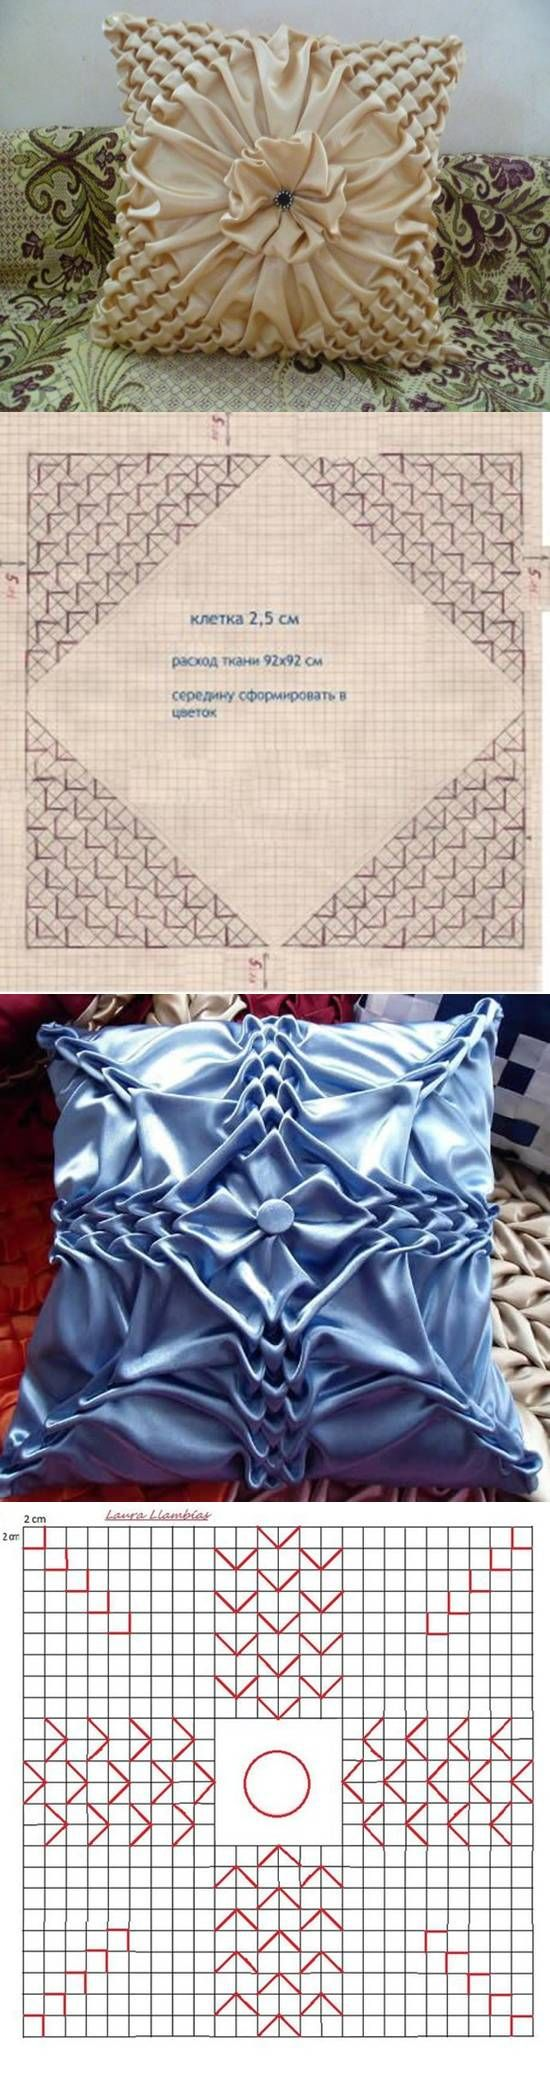 DIY Pillow Patterns Puffed Sleeves from http://www.usefuldiy.com/diy-pillow-patterns-puffed-sleeves/